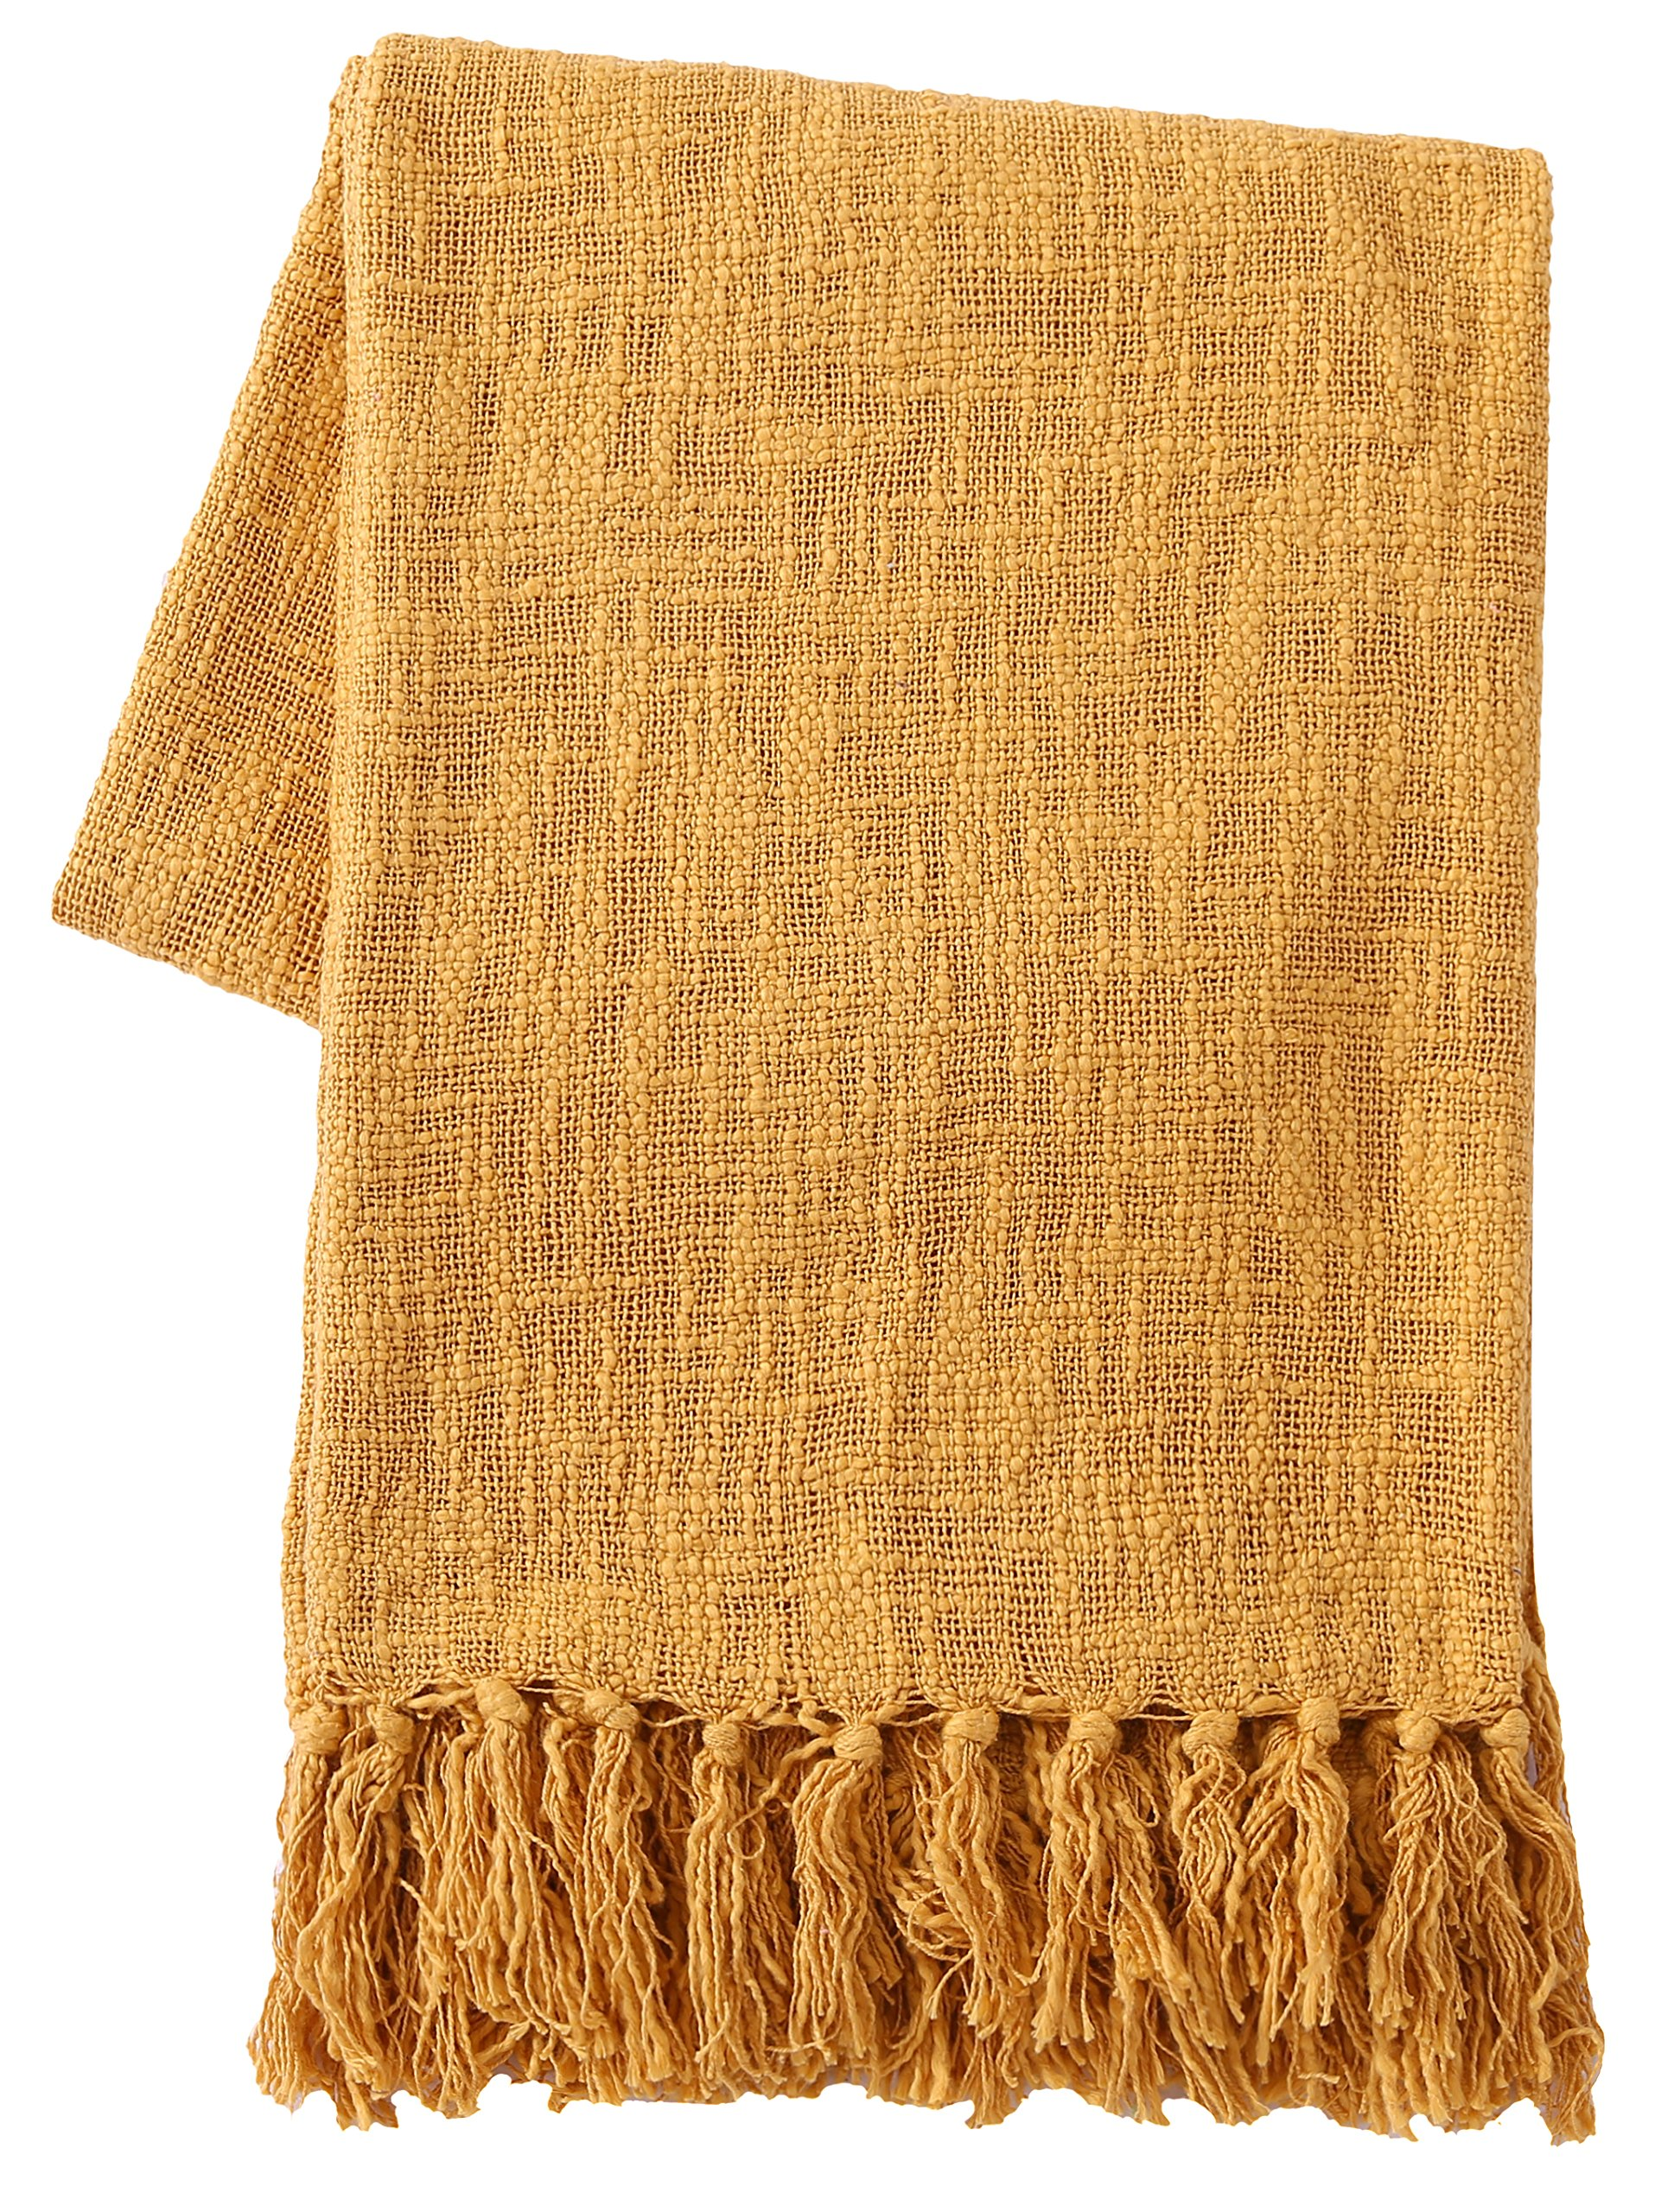 SLPR 100% Cotton Throw Blanket with Fringes (50'' x 60'', Mustard) | Soft Washable Woven Throw for Sofa Chair Picnic Camping Beach Everyday Use